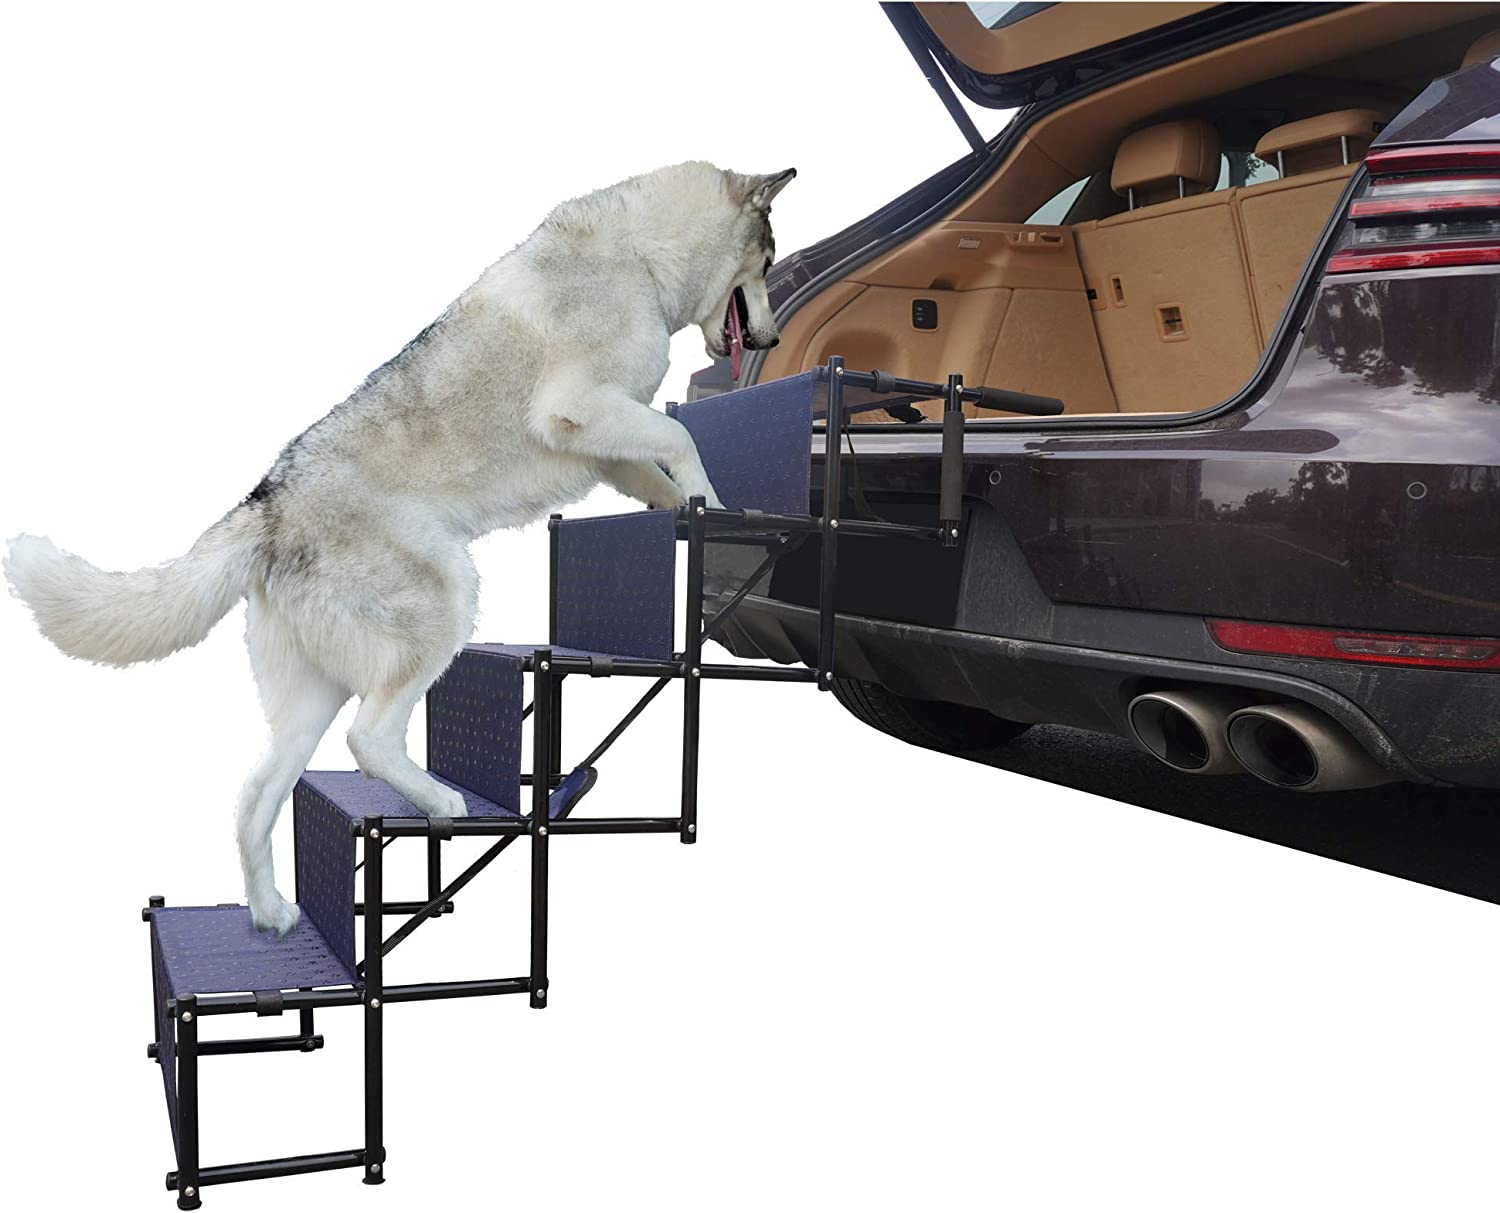 maxpama Adjustable Lightweight Upgraded Pet Dog Ramp for Car or SUV,Couch and High Bed Folding Accordion Design with Durable Metal Frame Portable Ladder Stairs with 4 Steps